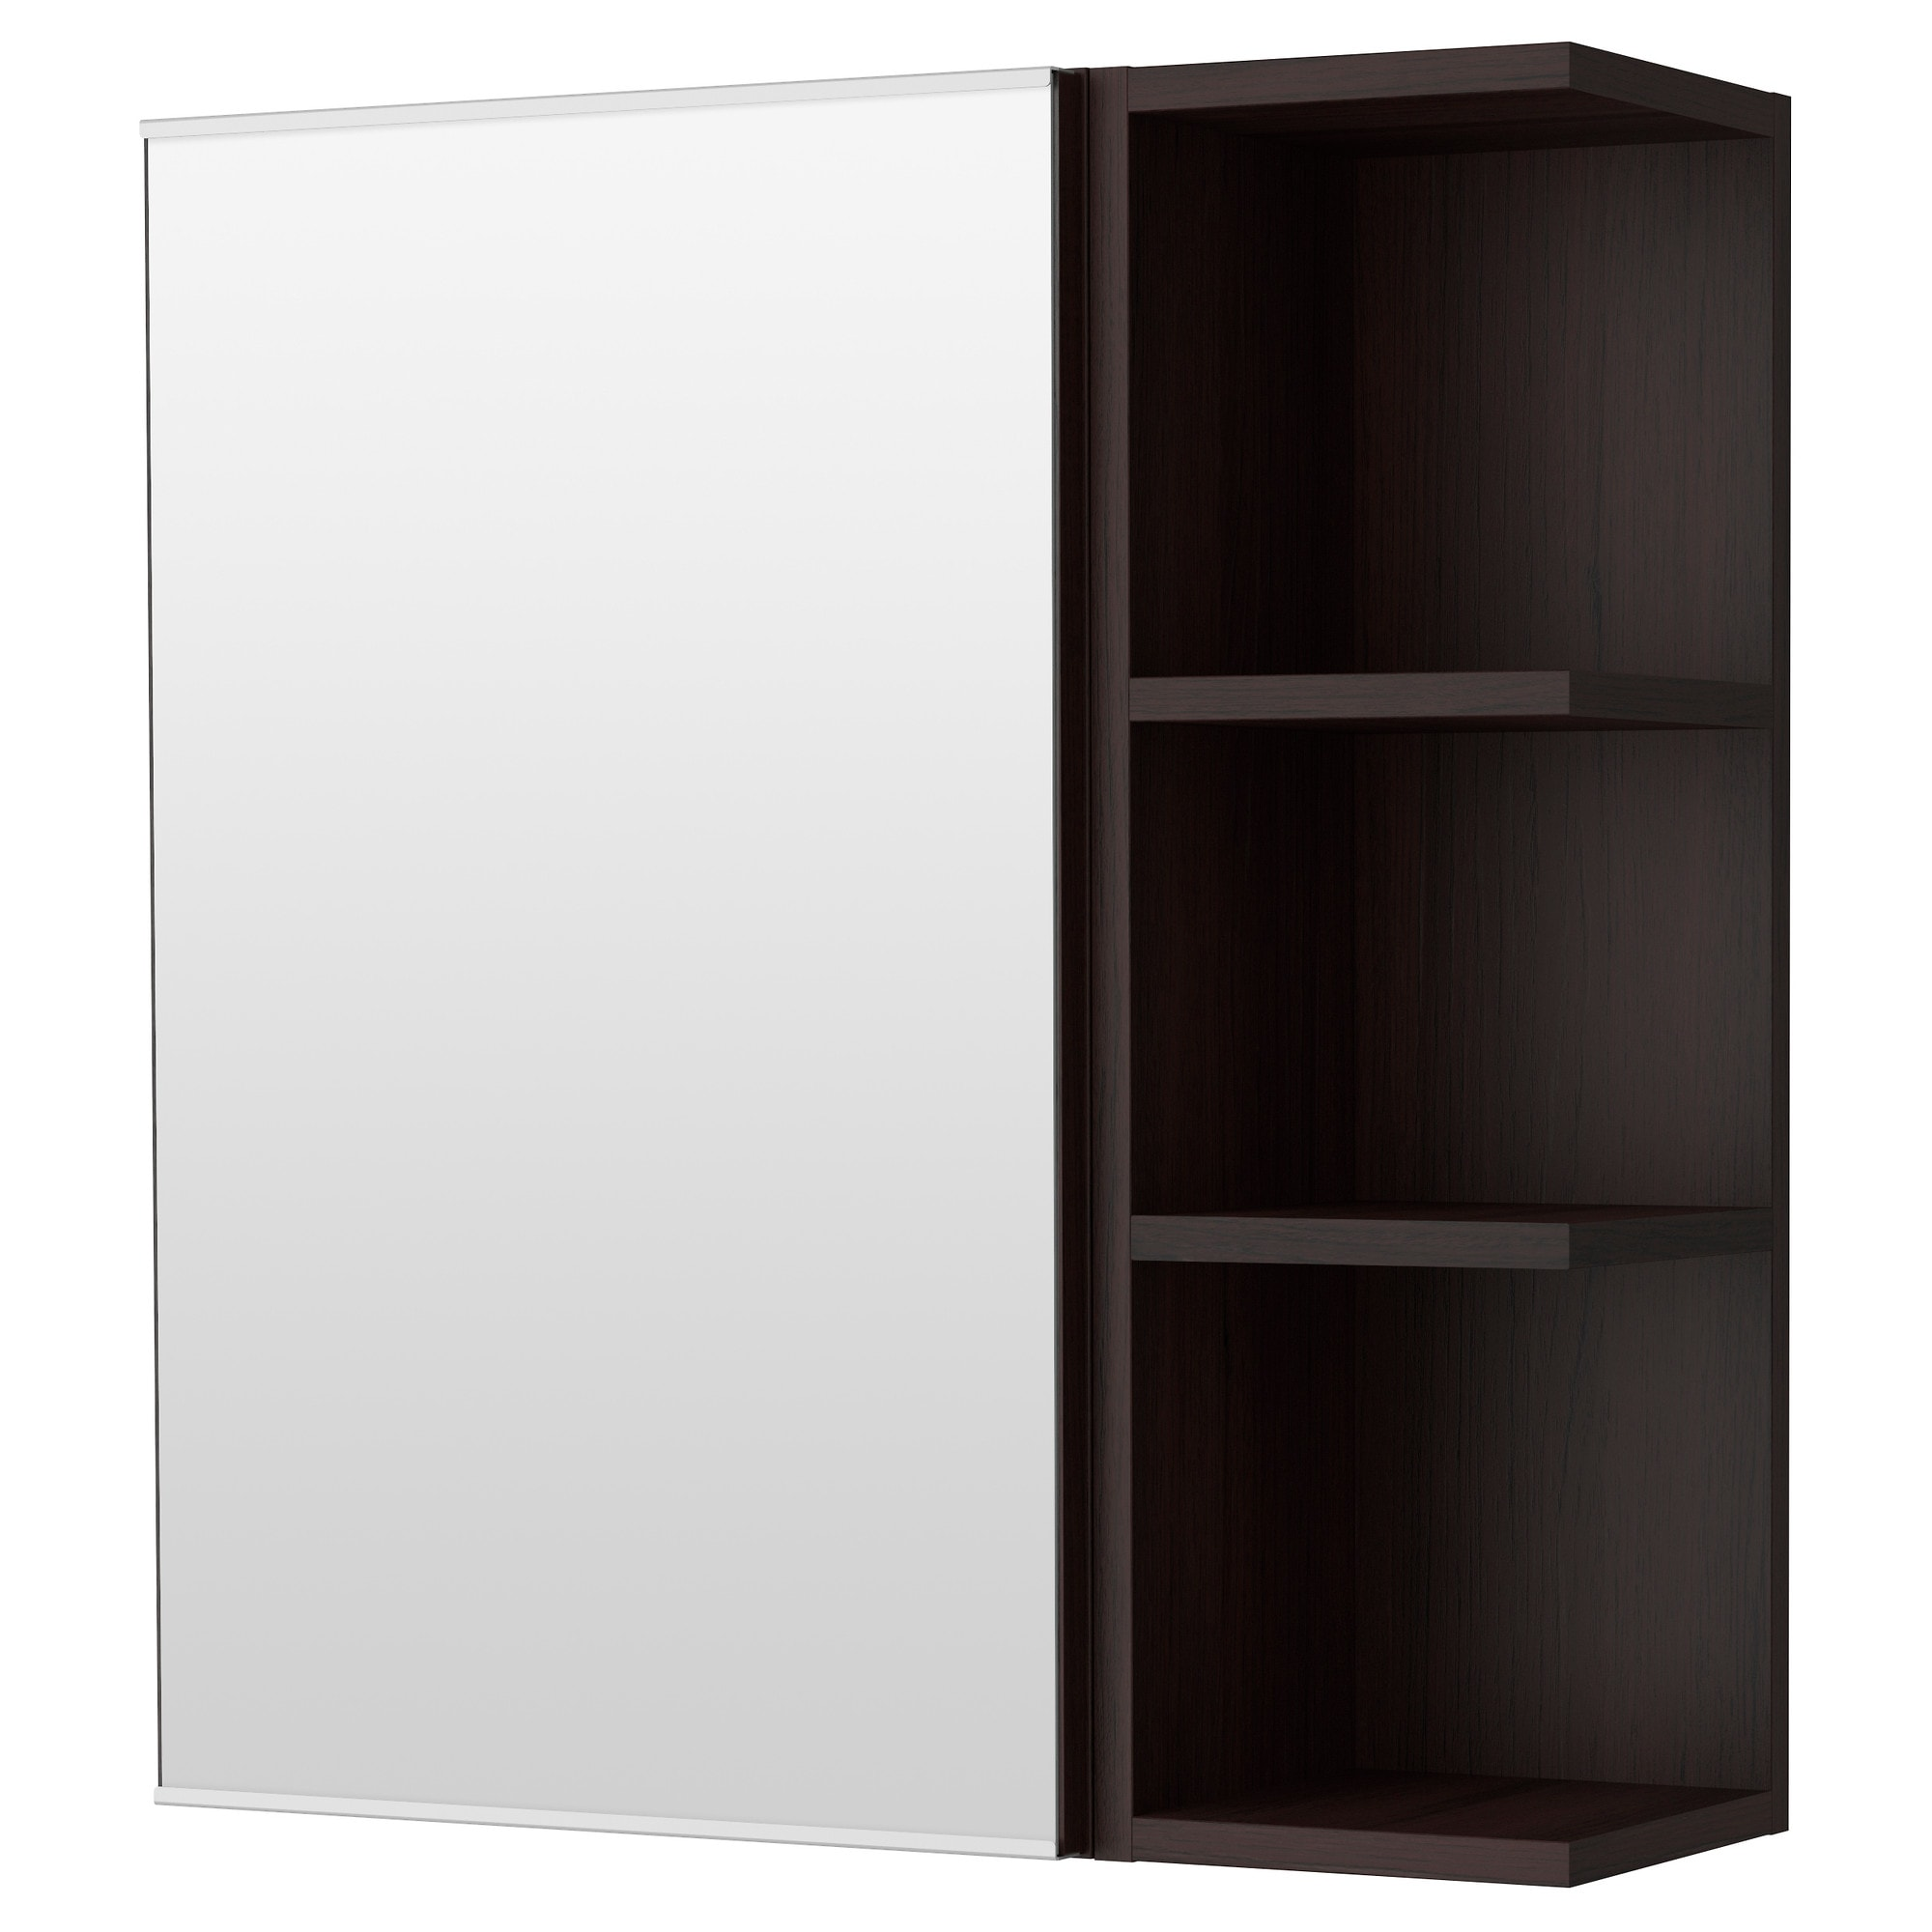 lillngen mirror cabinet 1 door1 end unit blackbrown width 23 - Corner Bathroom Cabinet